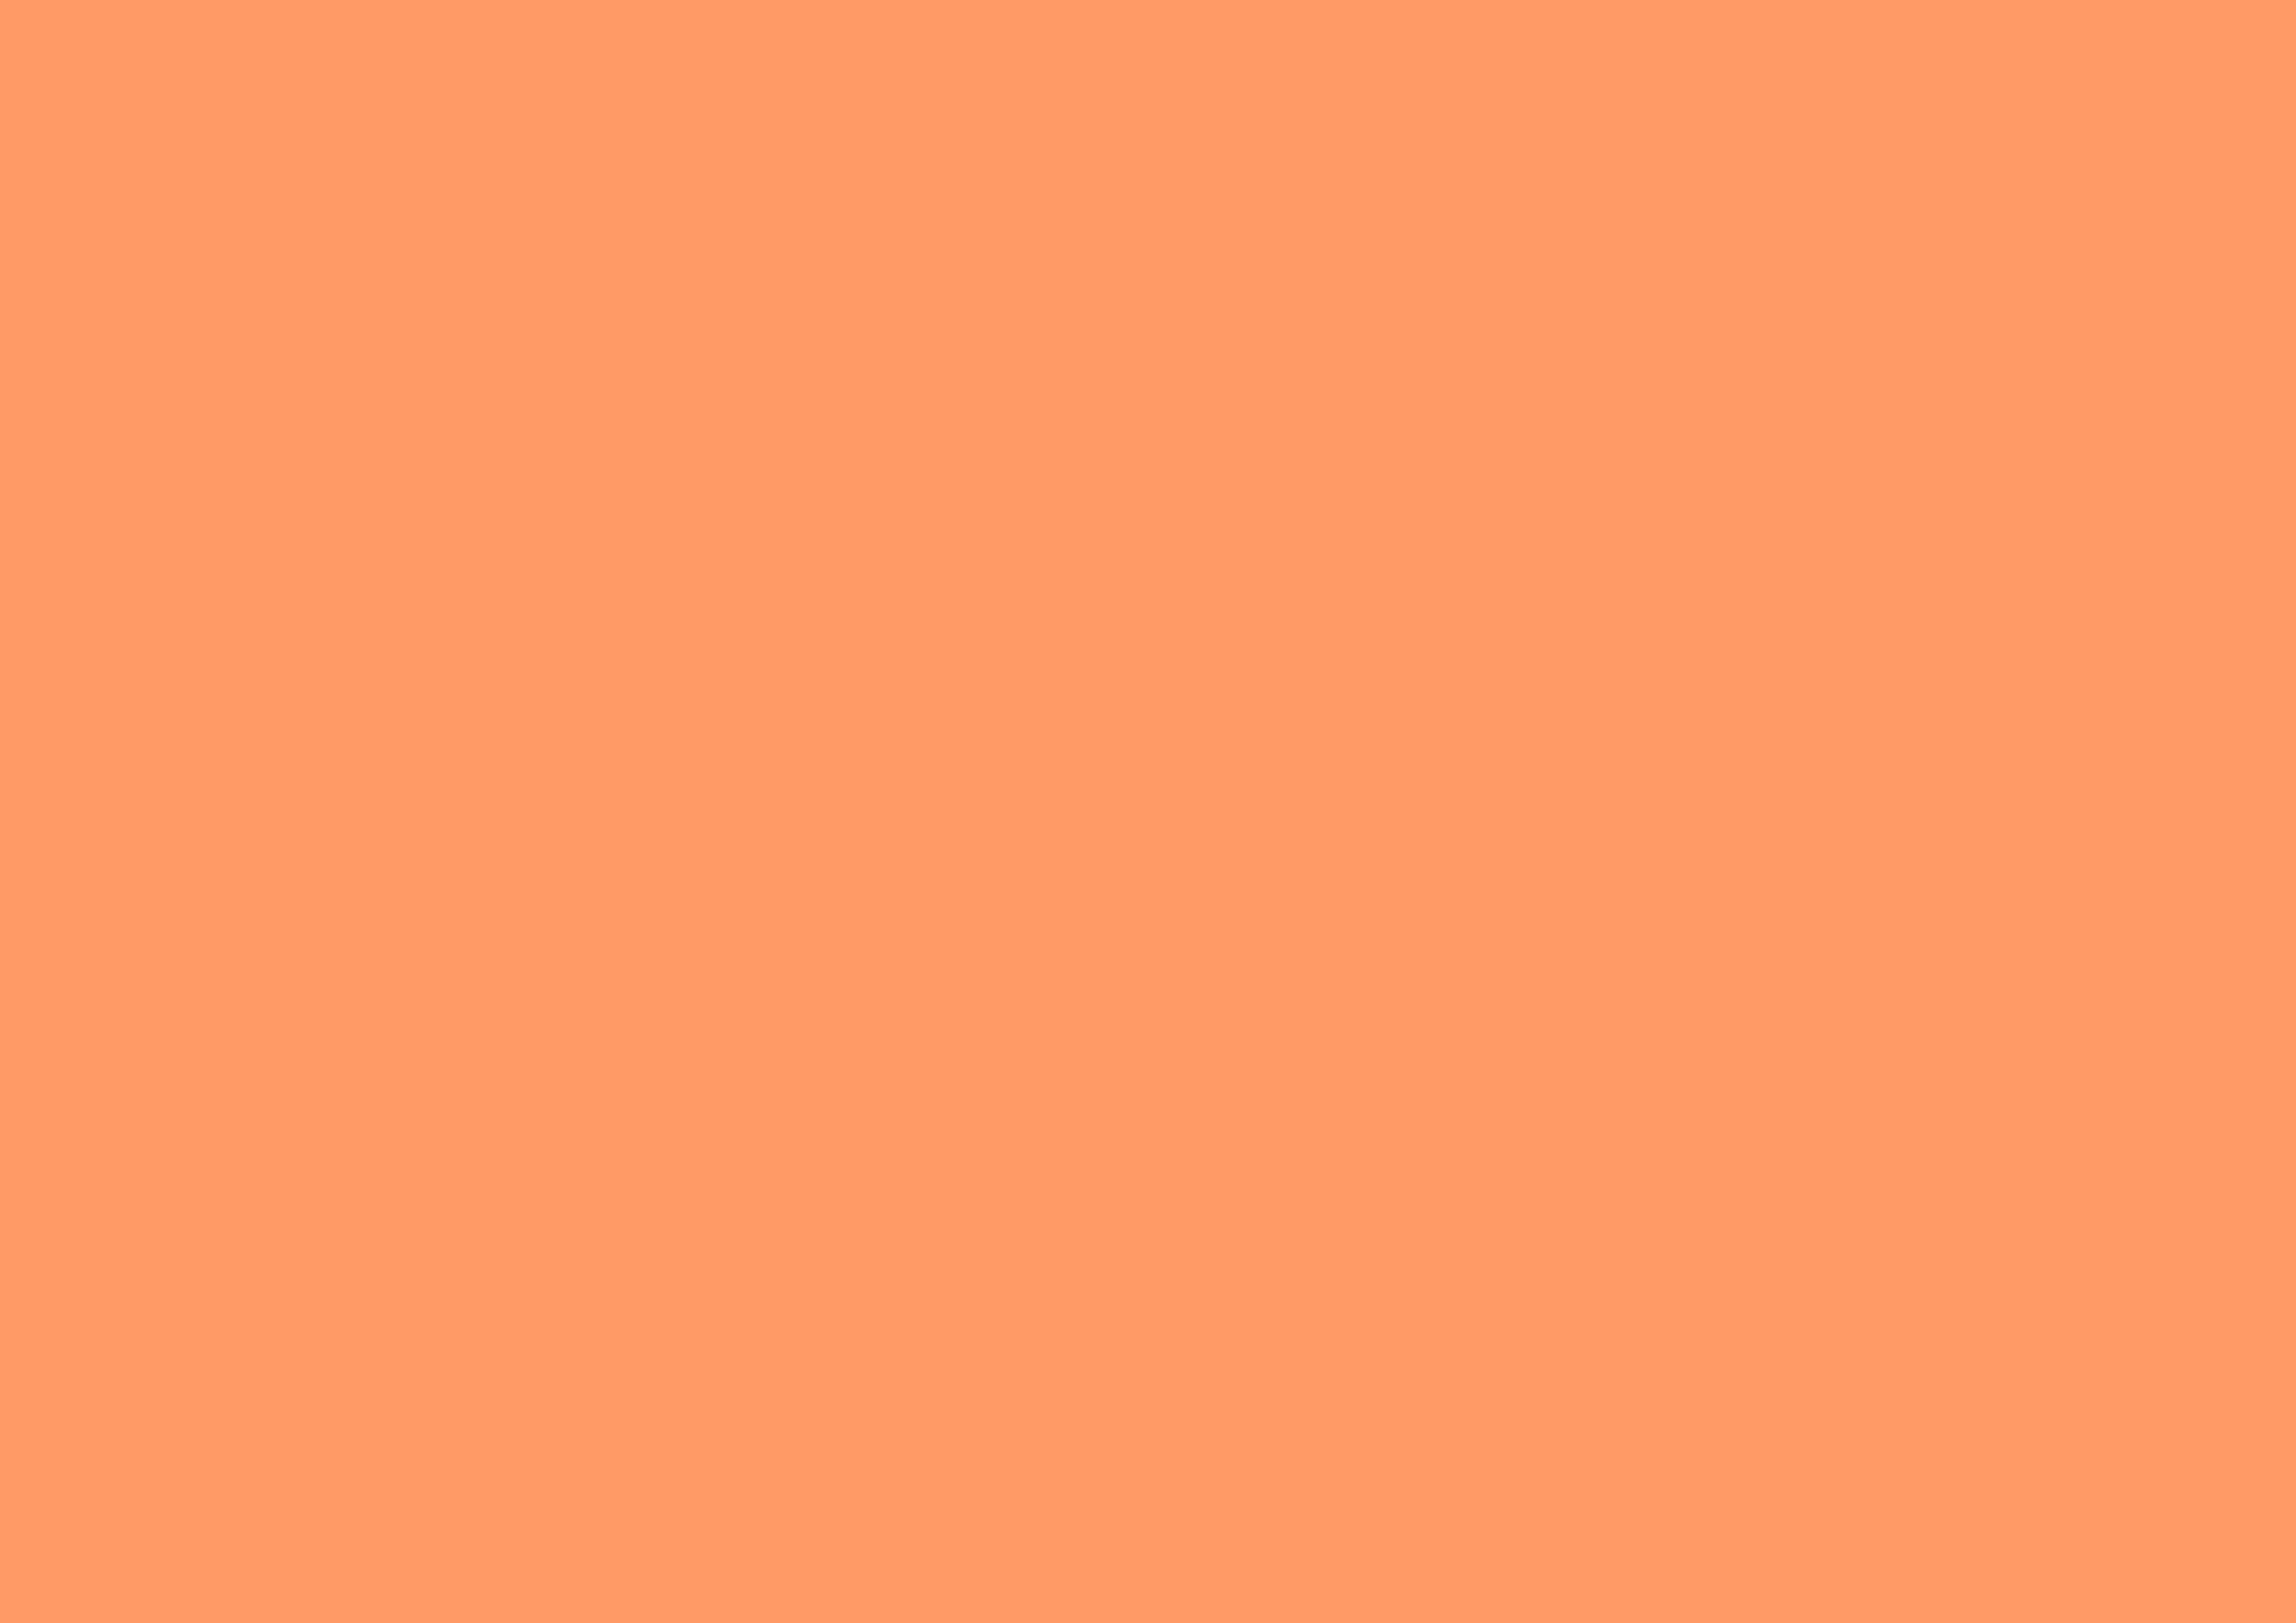 3508x2480 Atomic Tangerine Solid Color Background